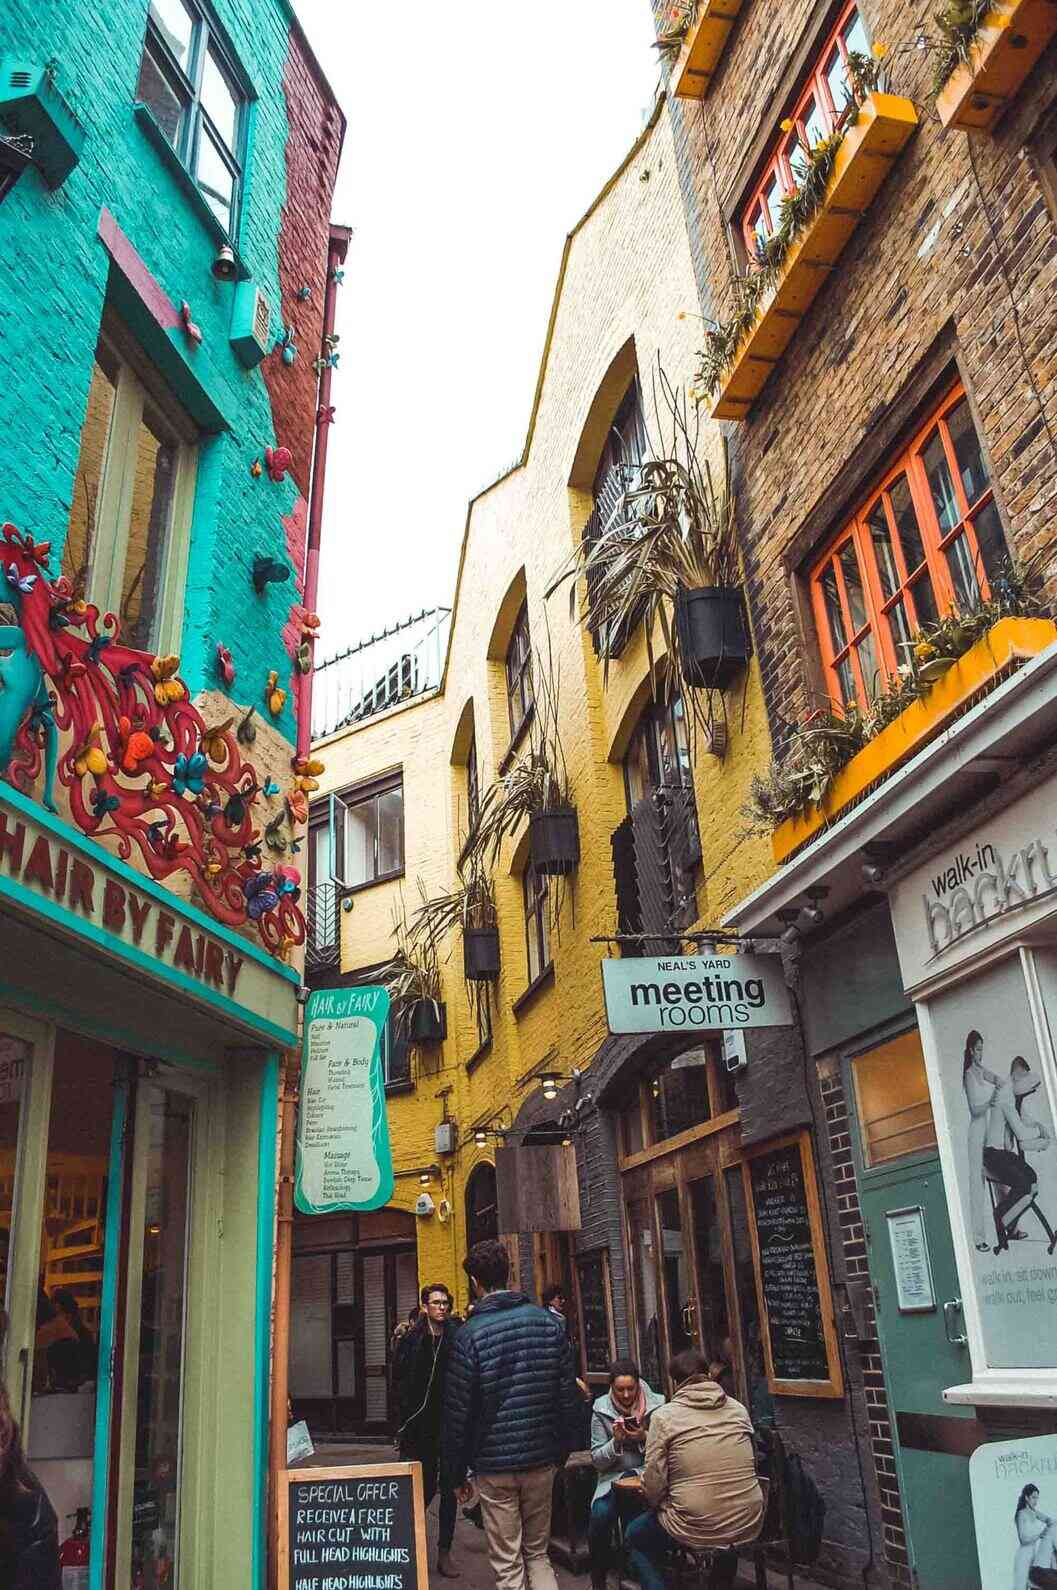 Neal's Yard is a short walk from Covent Garden lined with cute cafes and restaurants. Plus the colourful buildings make for a good photo op.